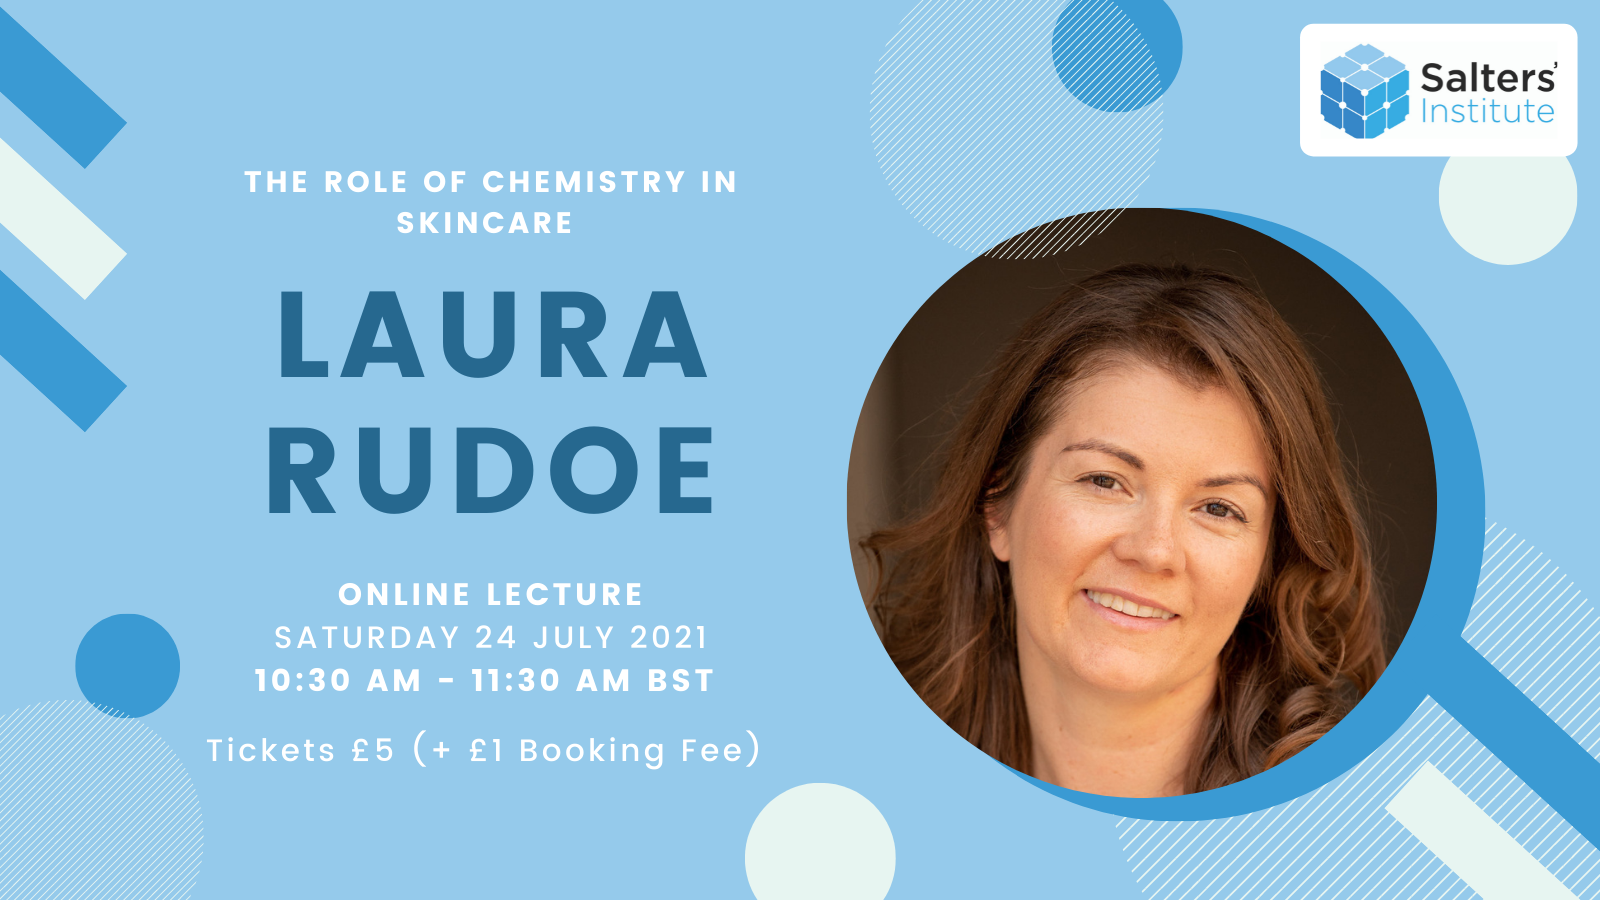 Image of Laura Rudoe with 24th July and 10.30am as event info